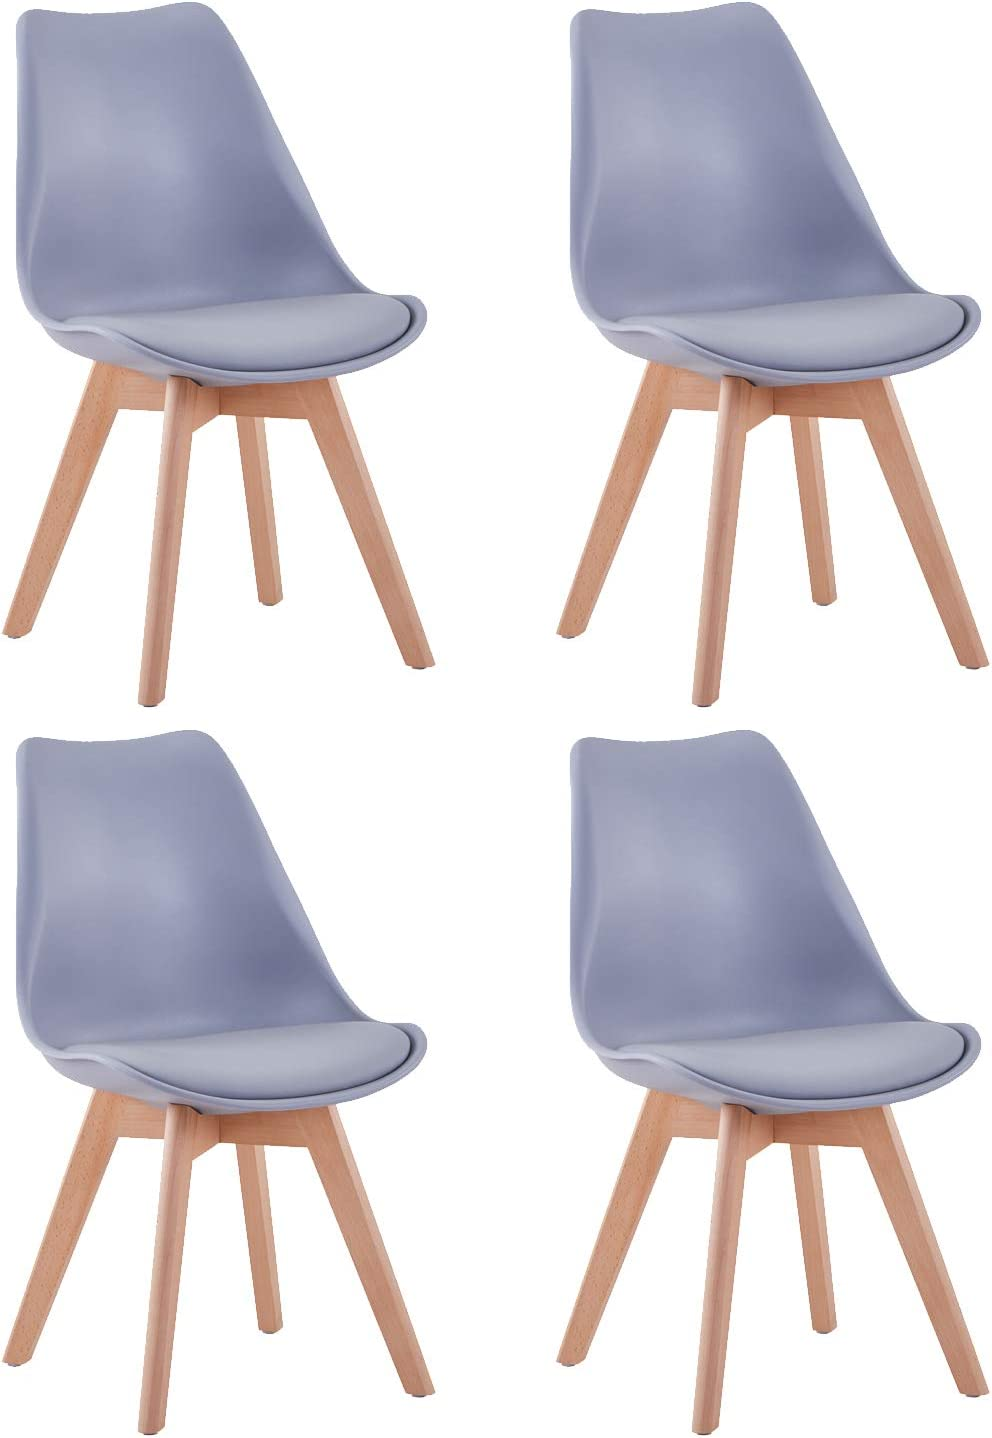 GOLDFAN Tulip Dining Chairs 4 Set Natural Solid Wood Legs Soft Padded Seat Kitchen Chairs Retro Lounge Chairs,Grey